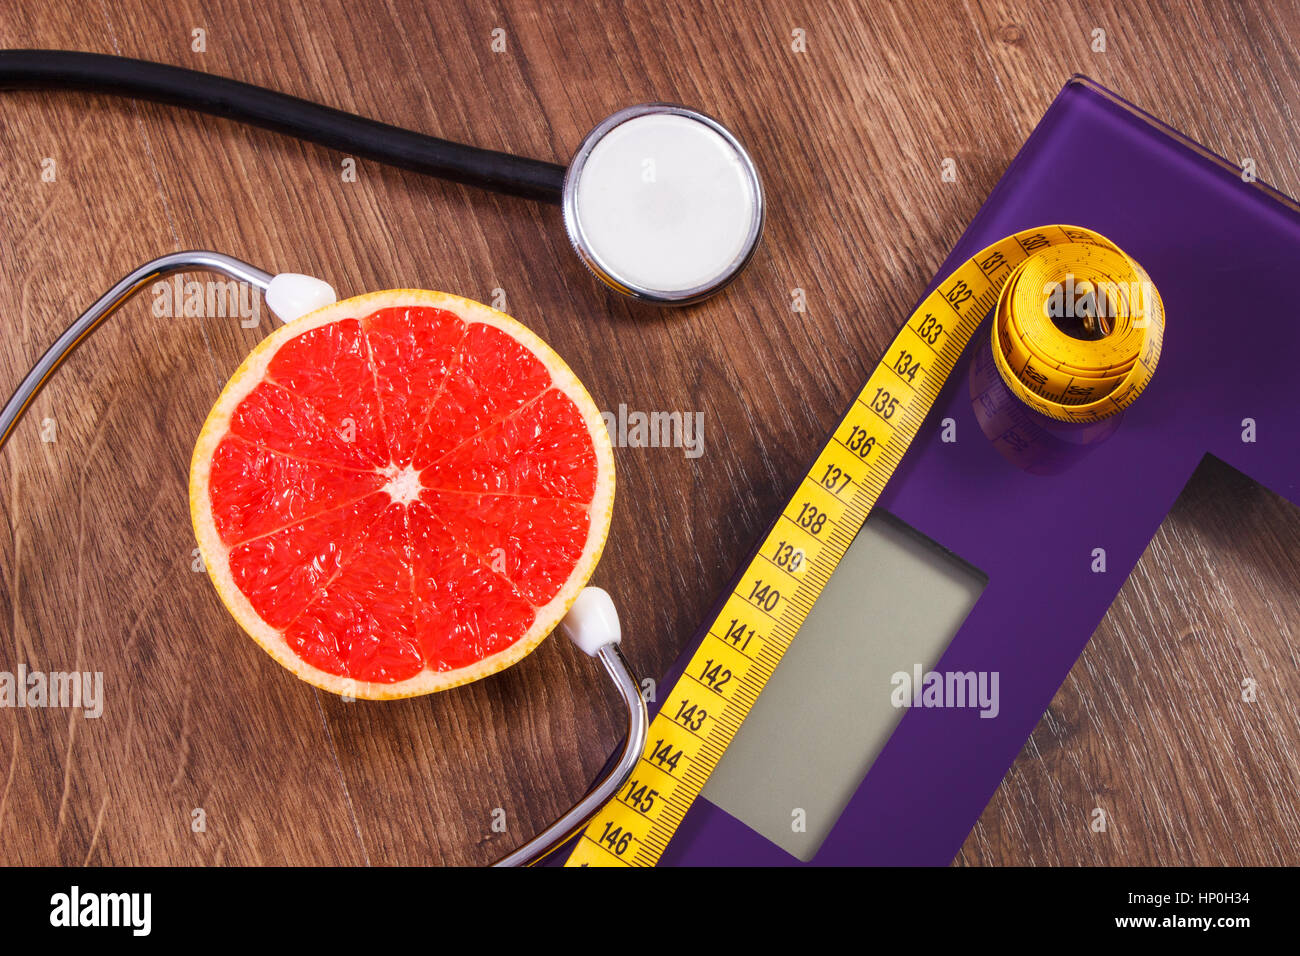 Digital electronic bathroom scale for weight of human body, tape measure and medical stethoscope with fresh grapefruit, - Stock Image